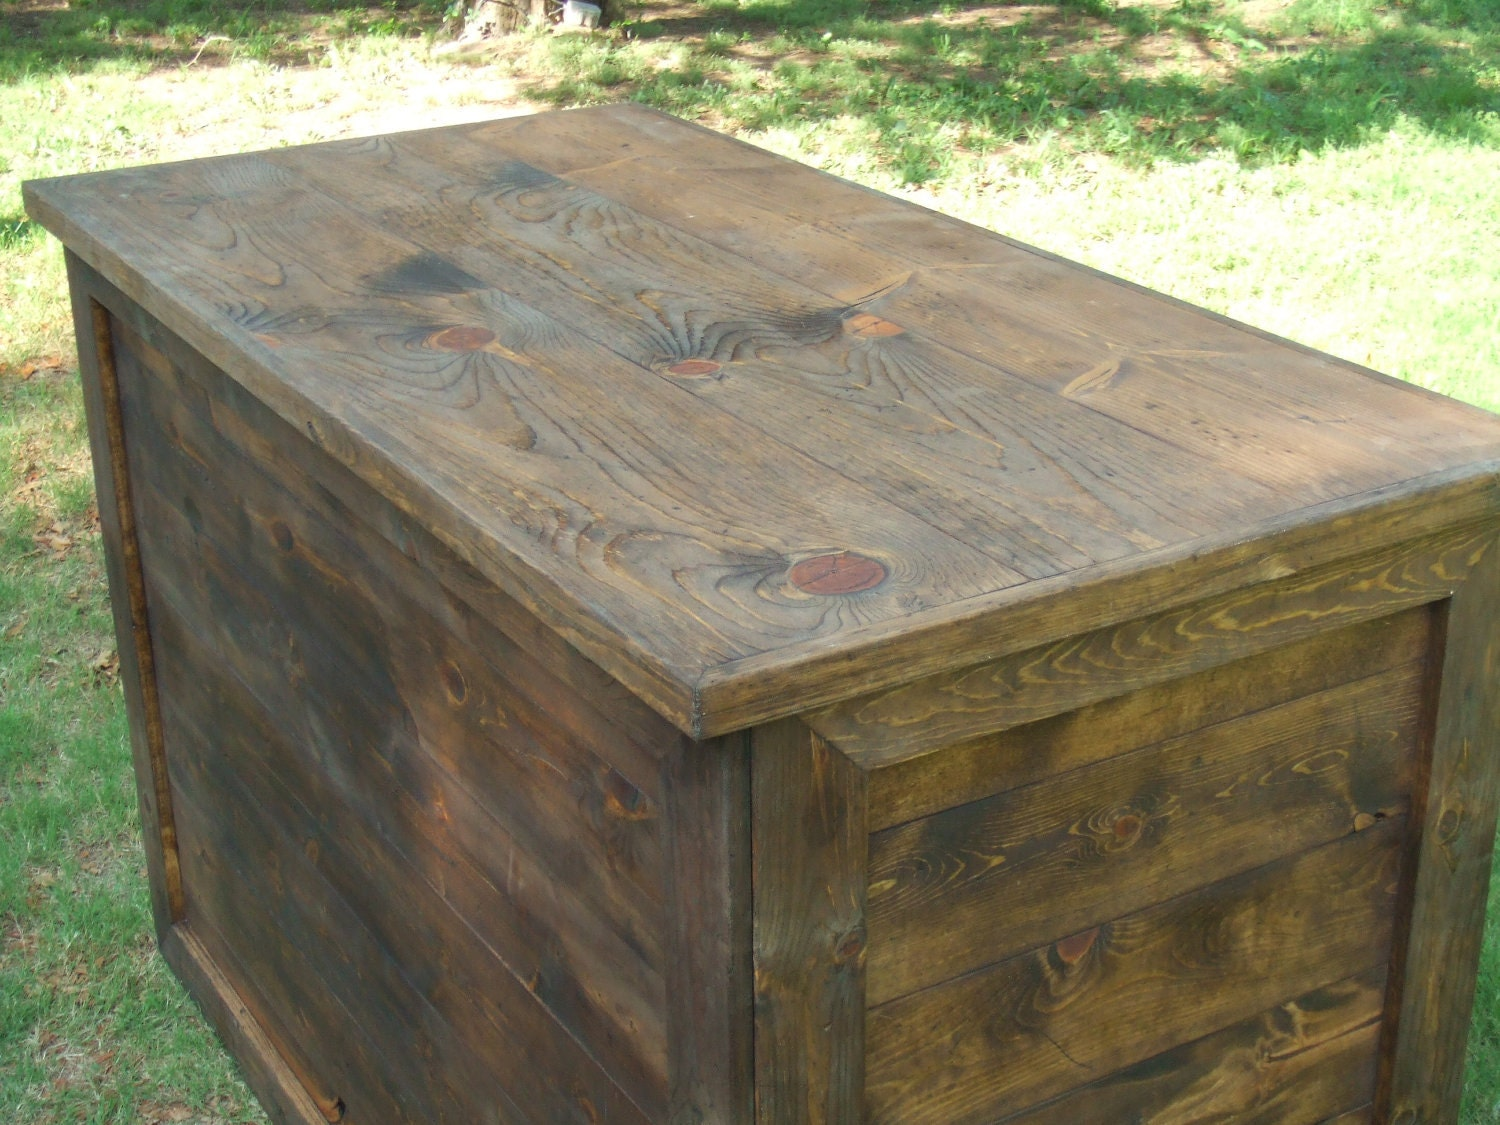 Trade Show Rustic custom table farmhouse furniture